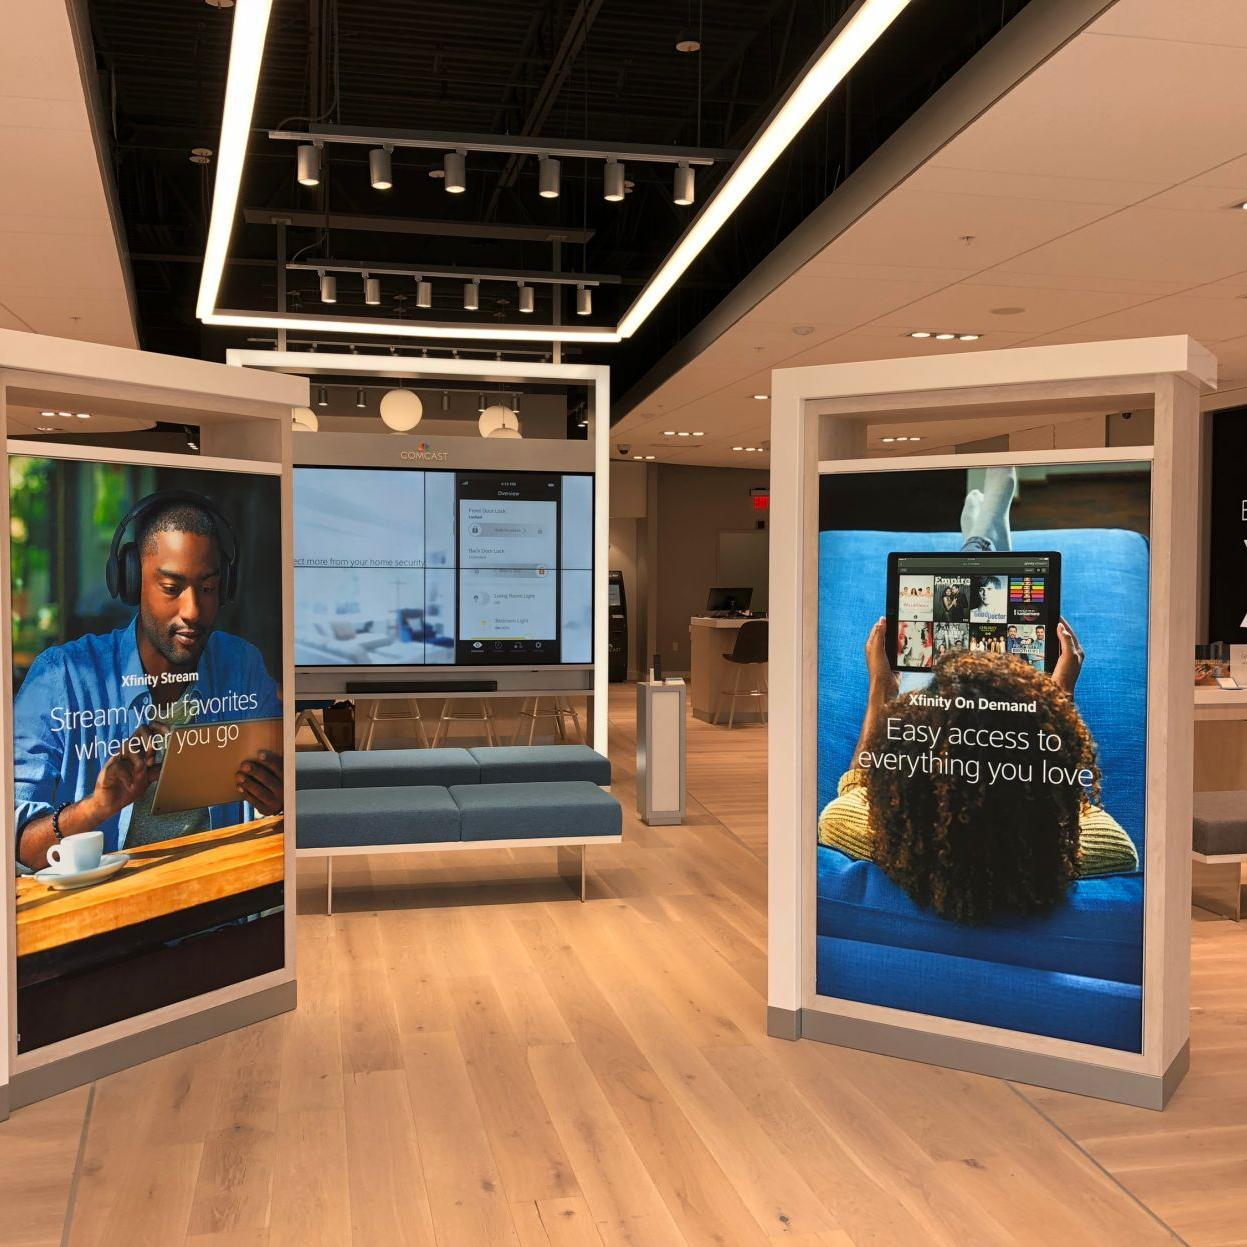 Comcast to open Xfinity store in Sandy Springs | Business